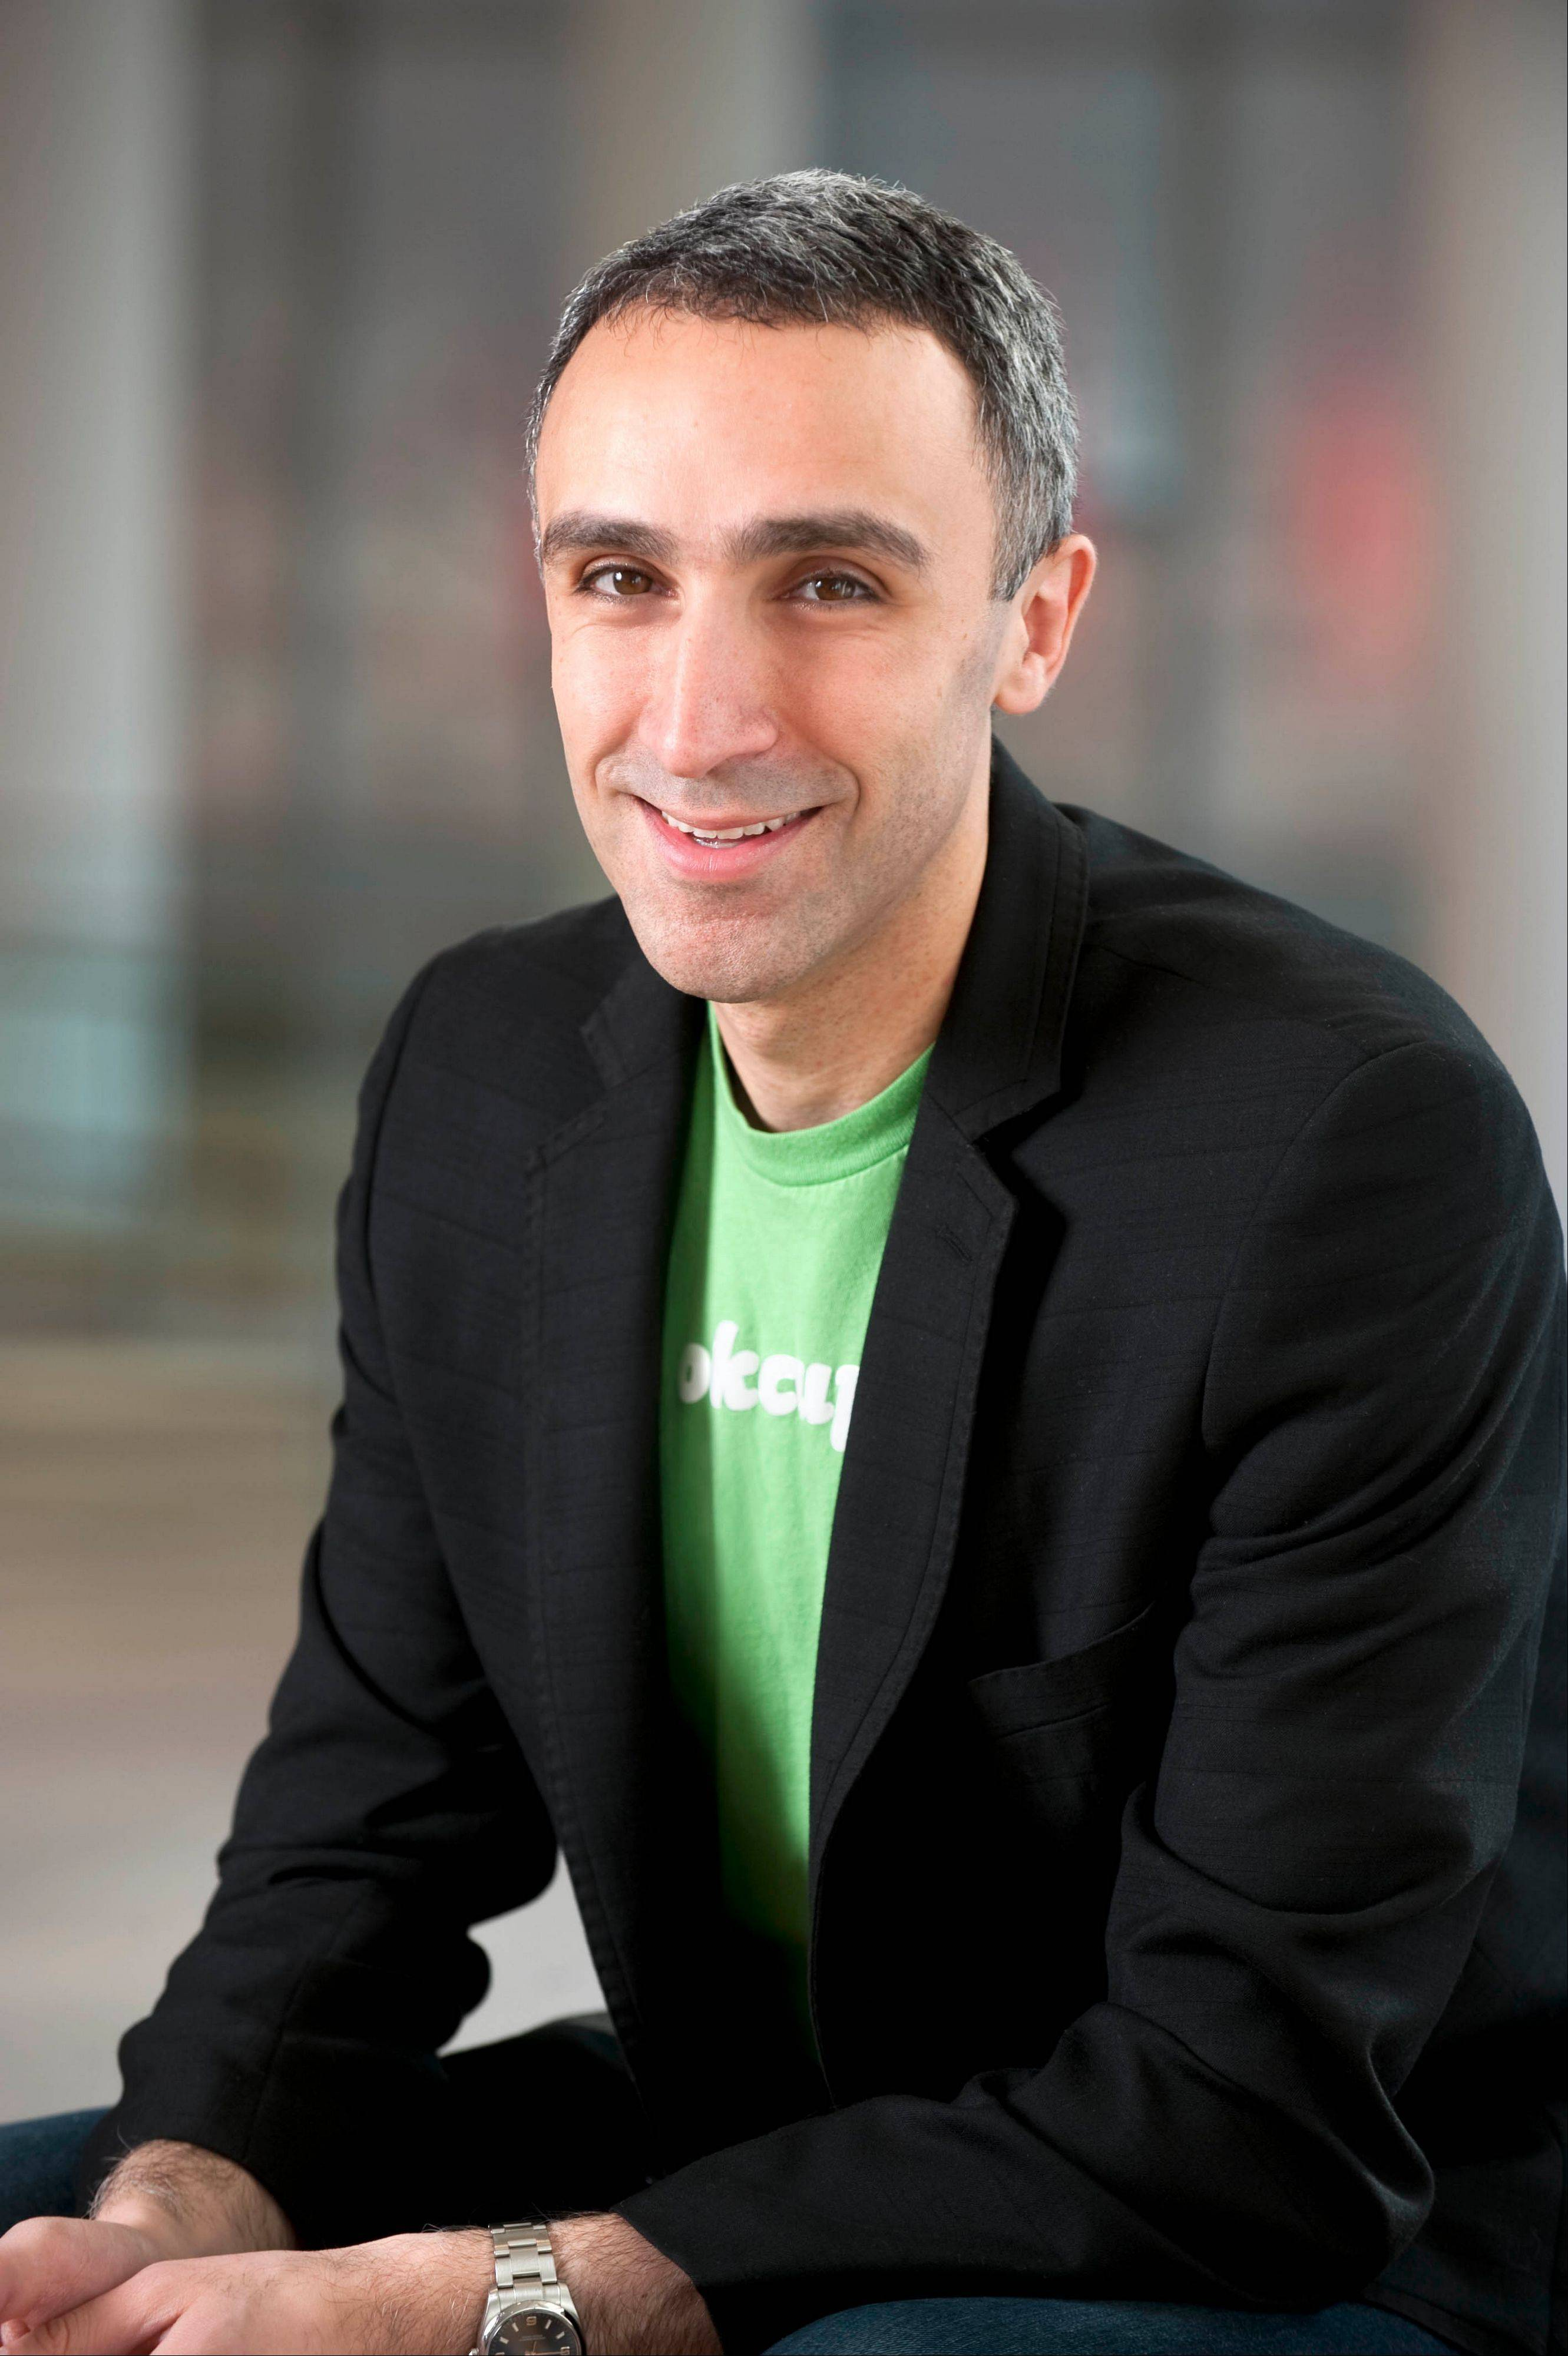 Sam Yagan, 35, is a 1995 graduate of the Illinois Math and Science Academy in Aurora and CEO of Match.com.